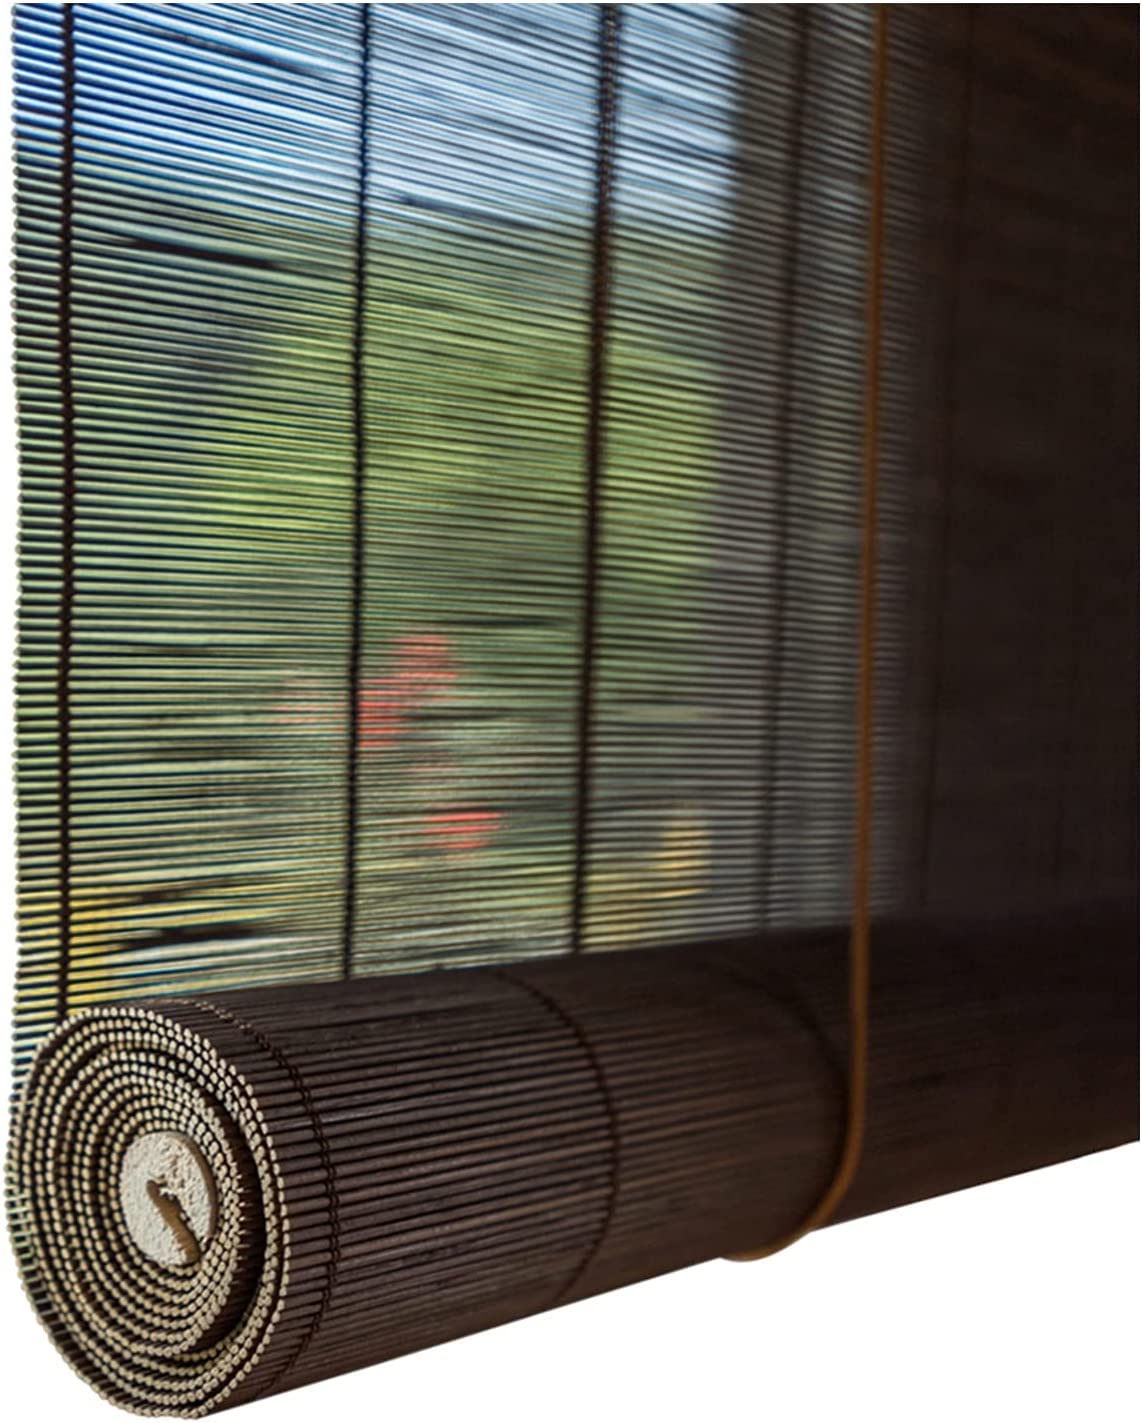 CHHD Bamboo Roller Blind Hand-Woven Spring new work one after Louisville-Jefferson County Mall another Anti-UV Retro Divider Room